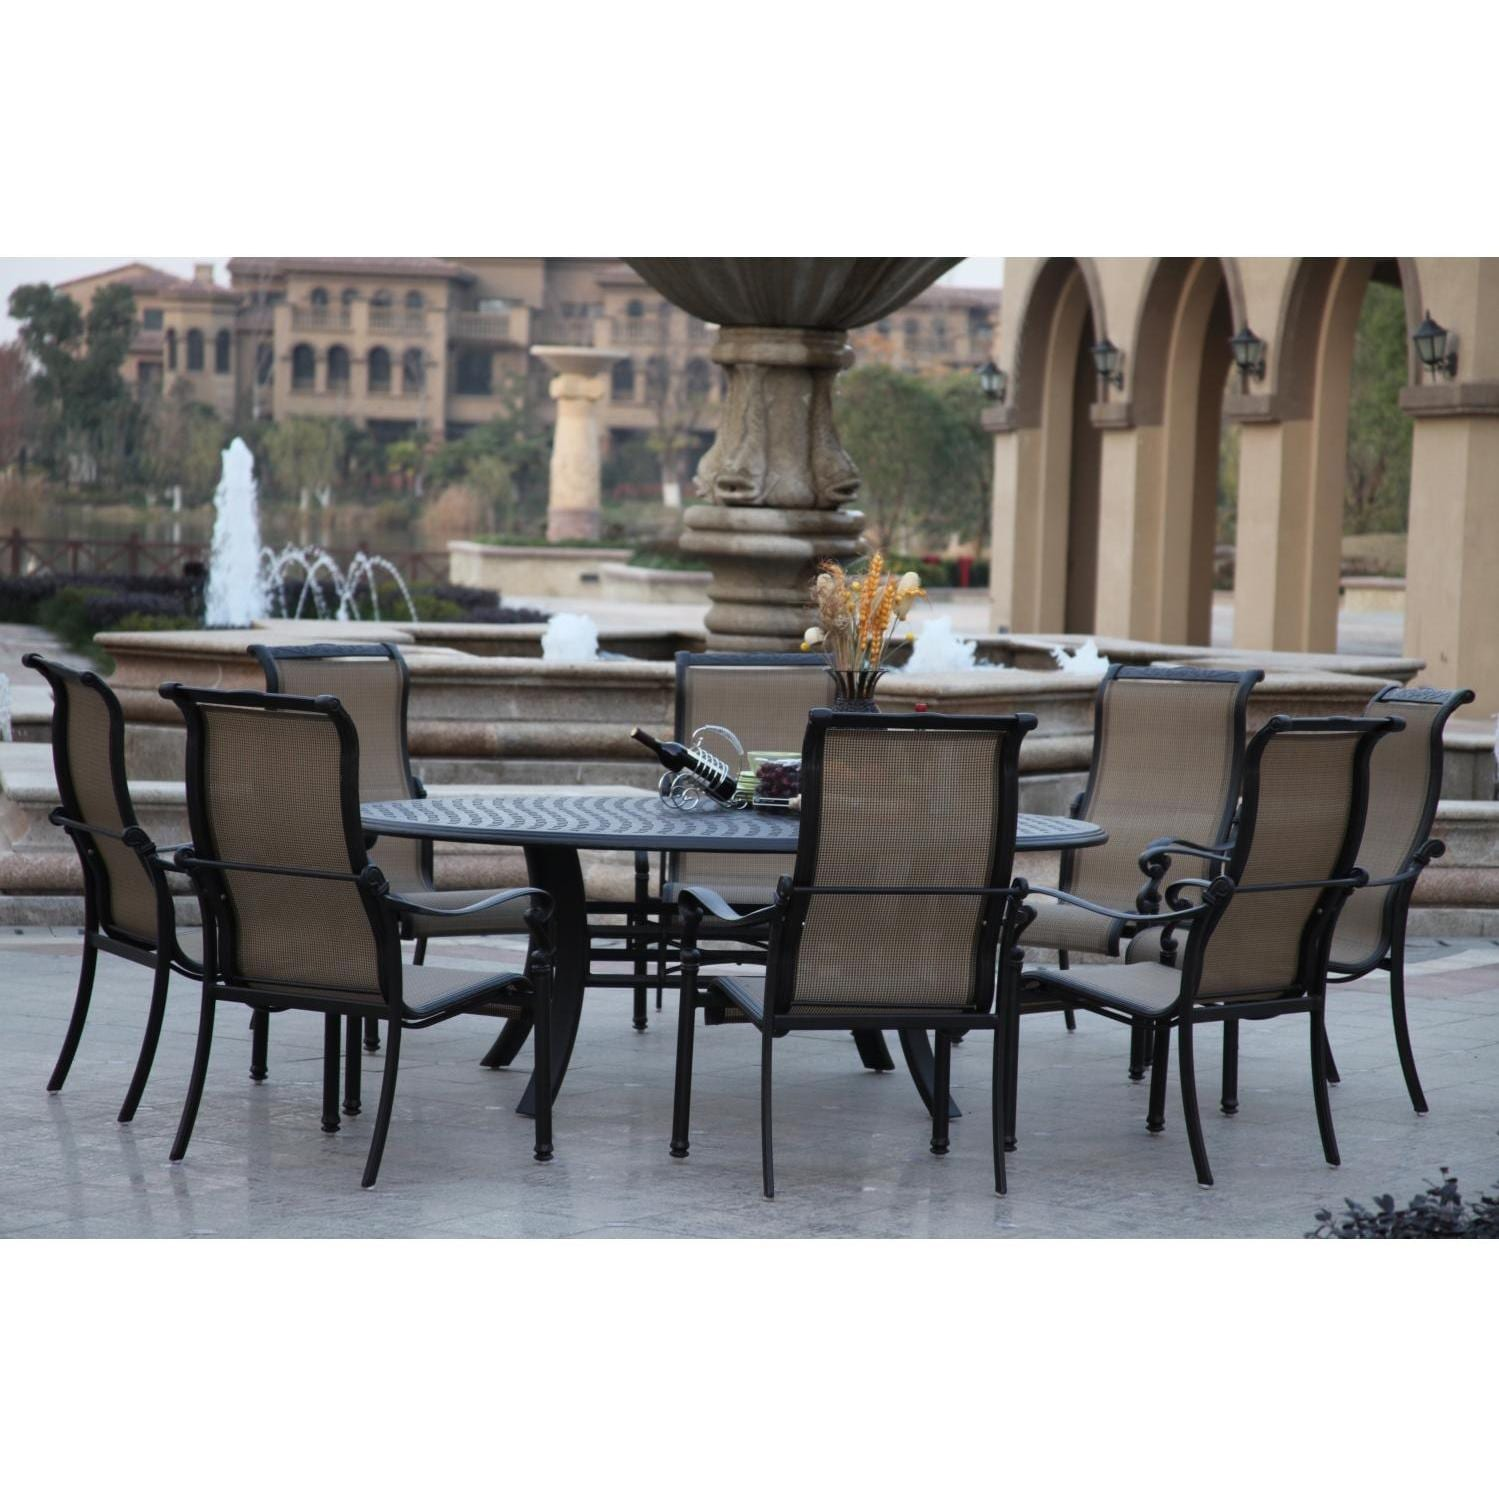 Darlee Monterey 9 Piece Sling Patio Dining Set